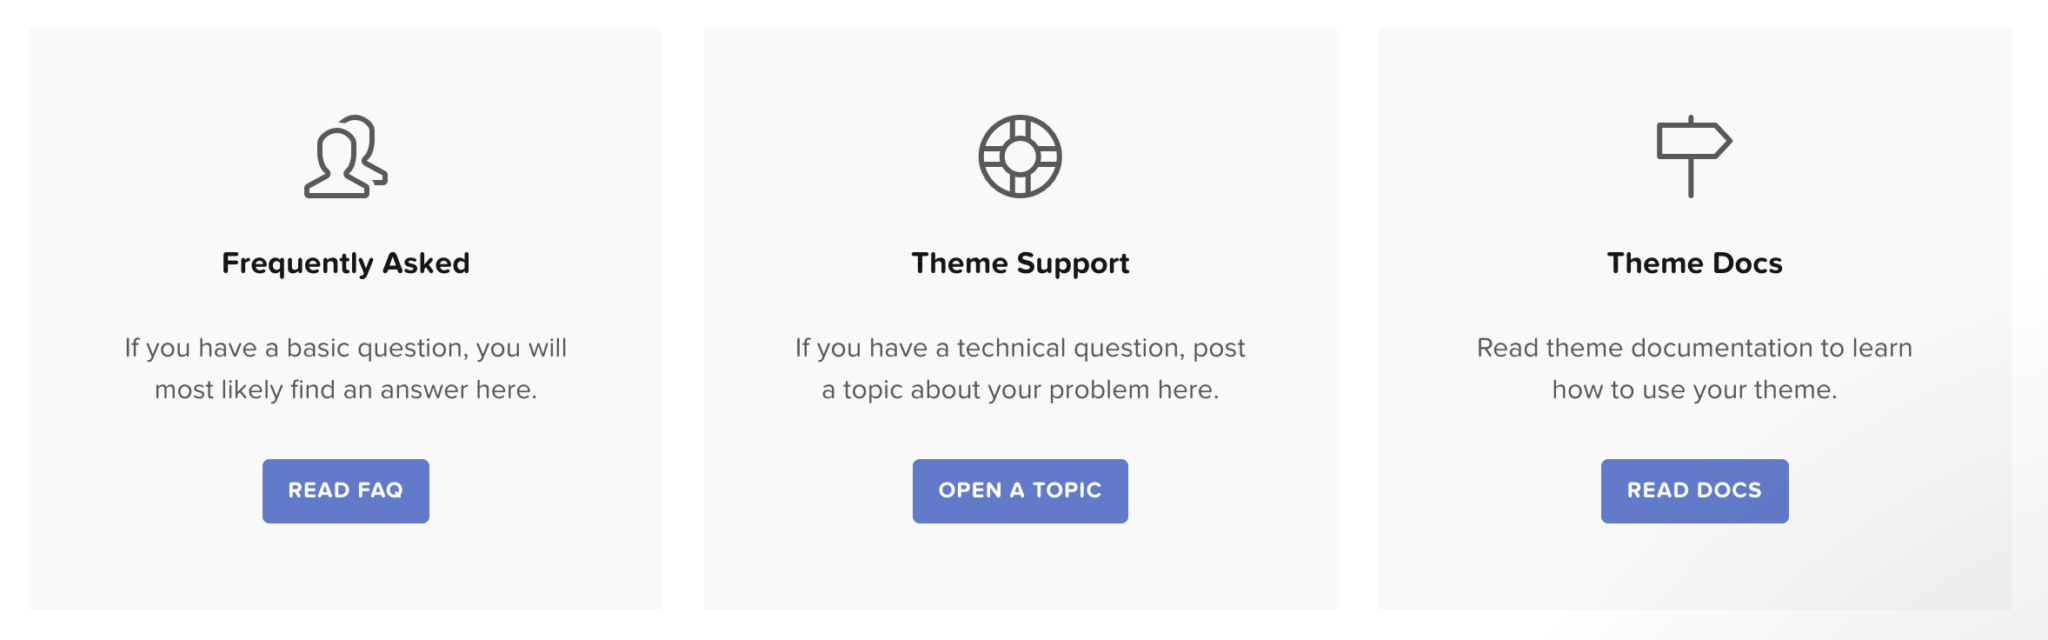 HB themes wordpress theme support page